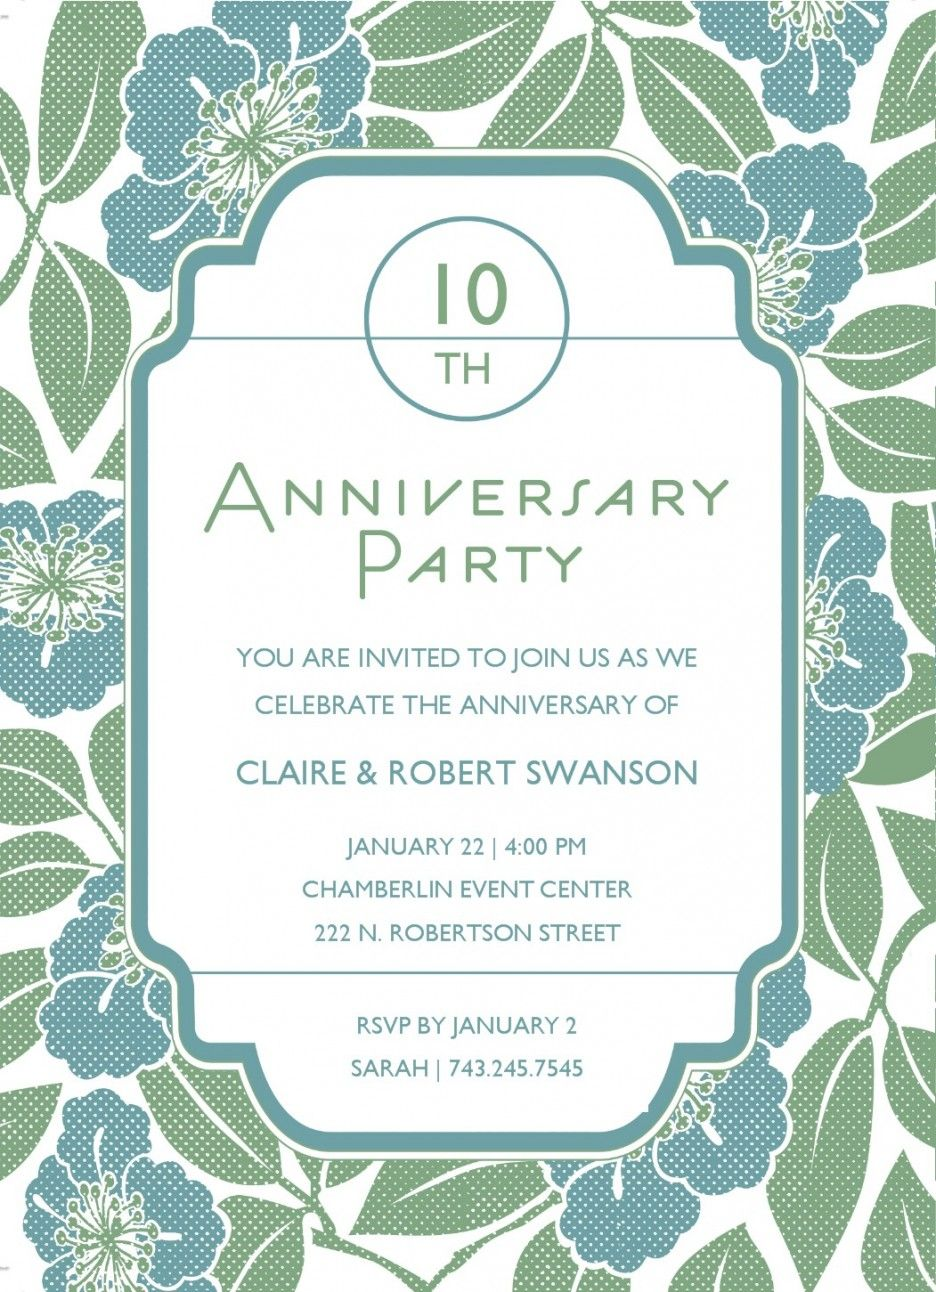 5th Anniversary Party Invitation With Floral Template  5th